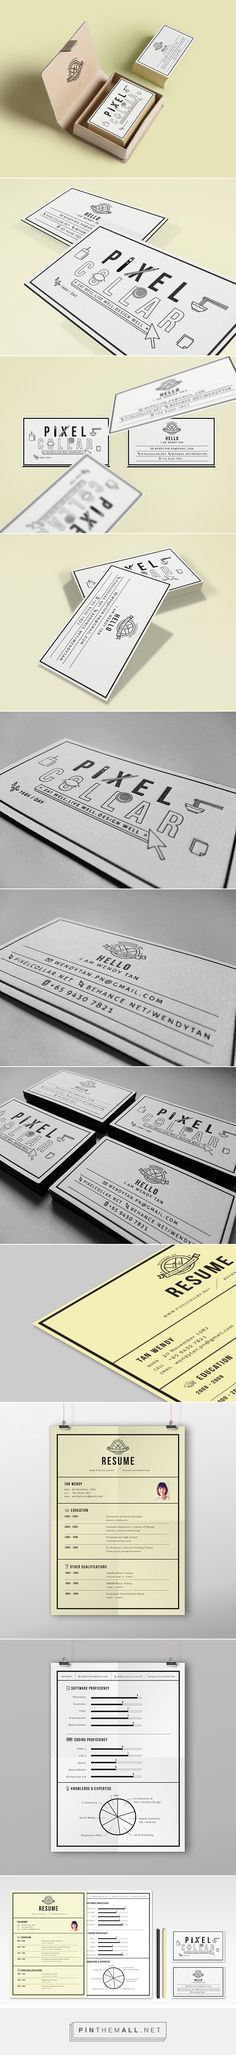 Pixel Collar - Namecard on Behance - created on Name Card Design, Bussiness Card, Self Promotion, Branding Ideas, Nice To Meet, Name Cards, Letterhead, Brand Design, Package Design